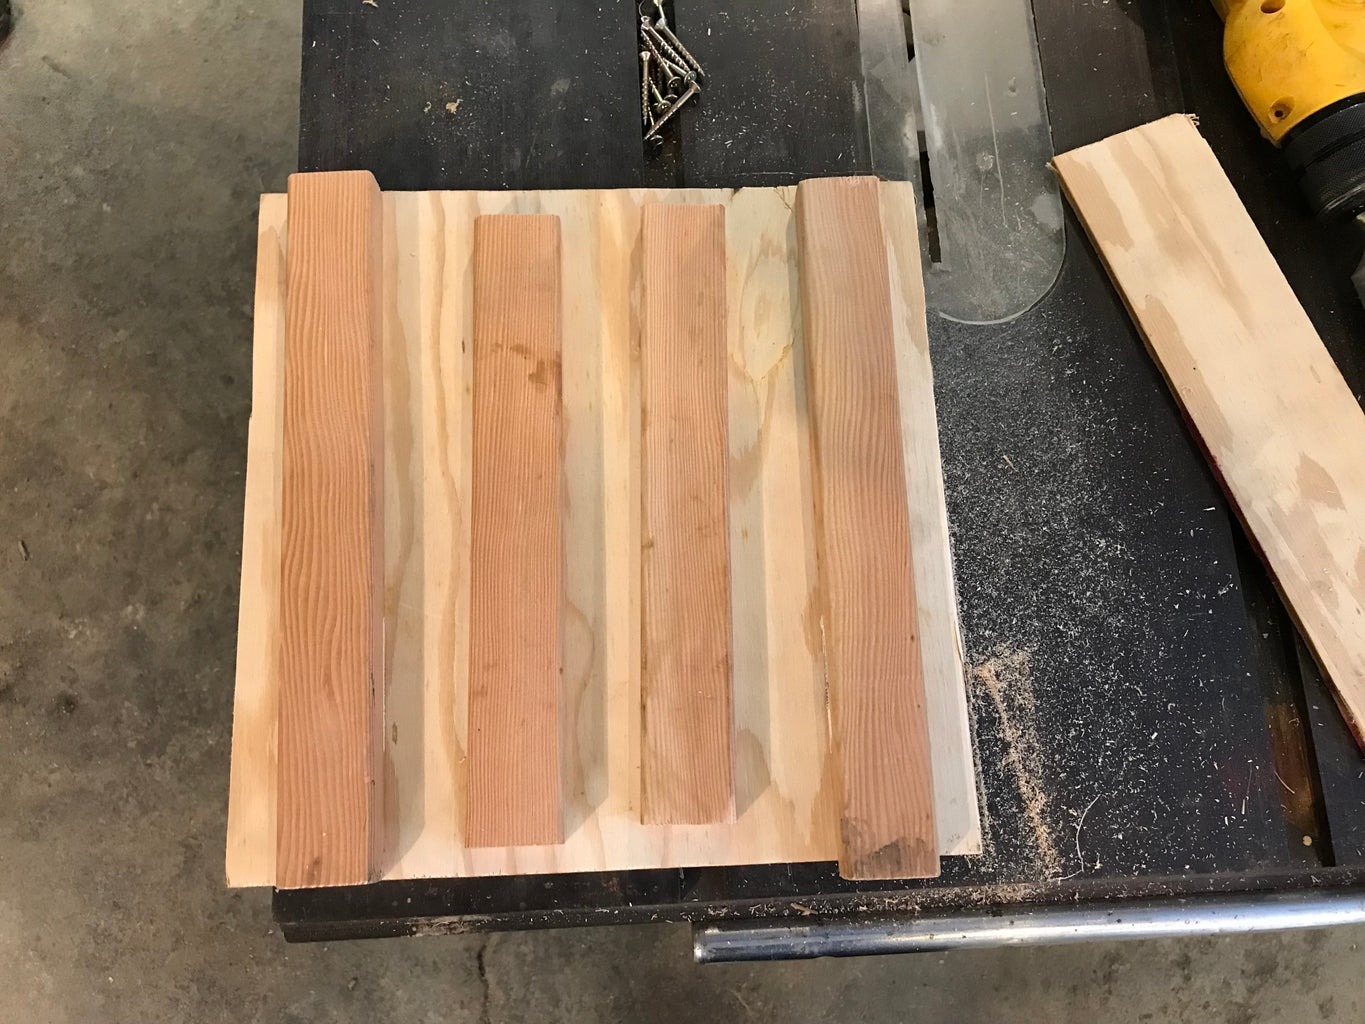 Cutting to Build